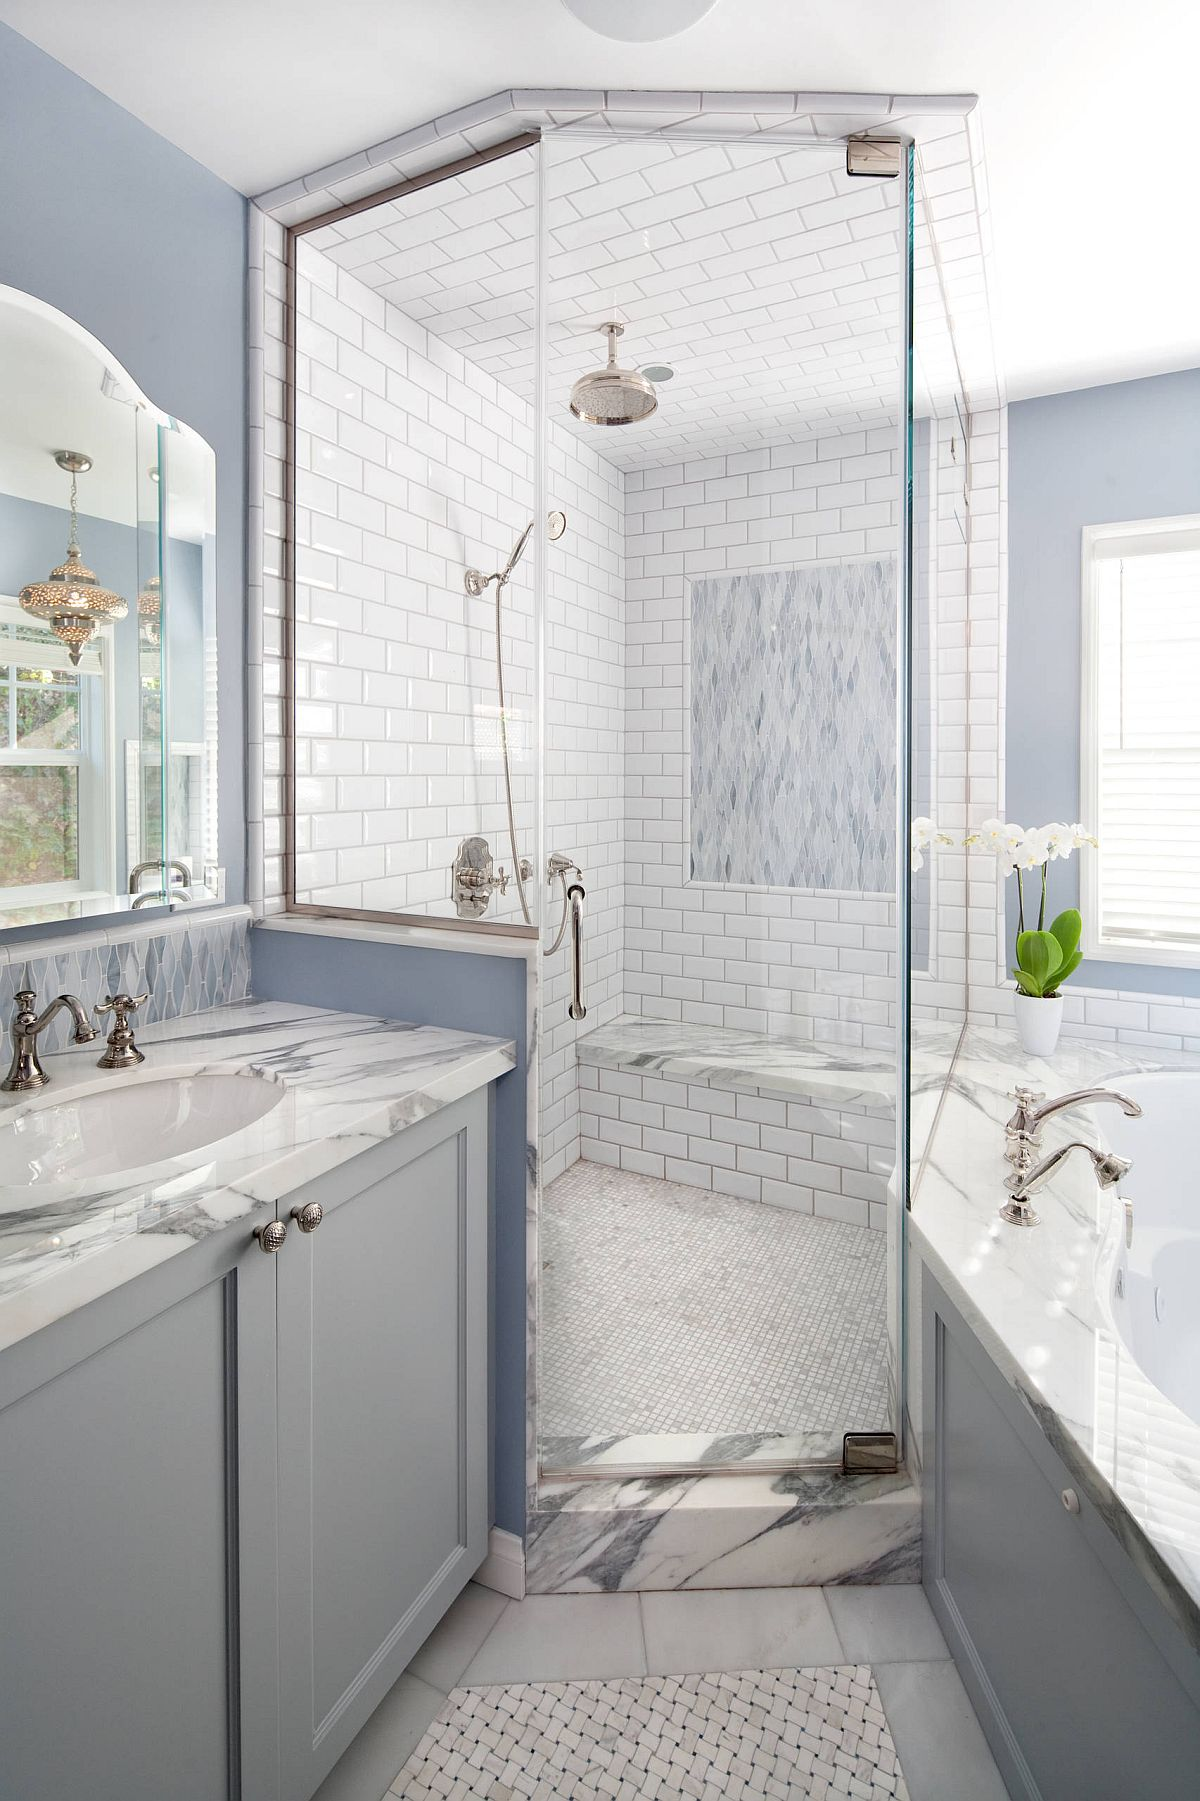 Beautiful beach style bathroom in blue, gray and white with luxurious shower area